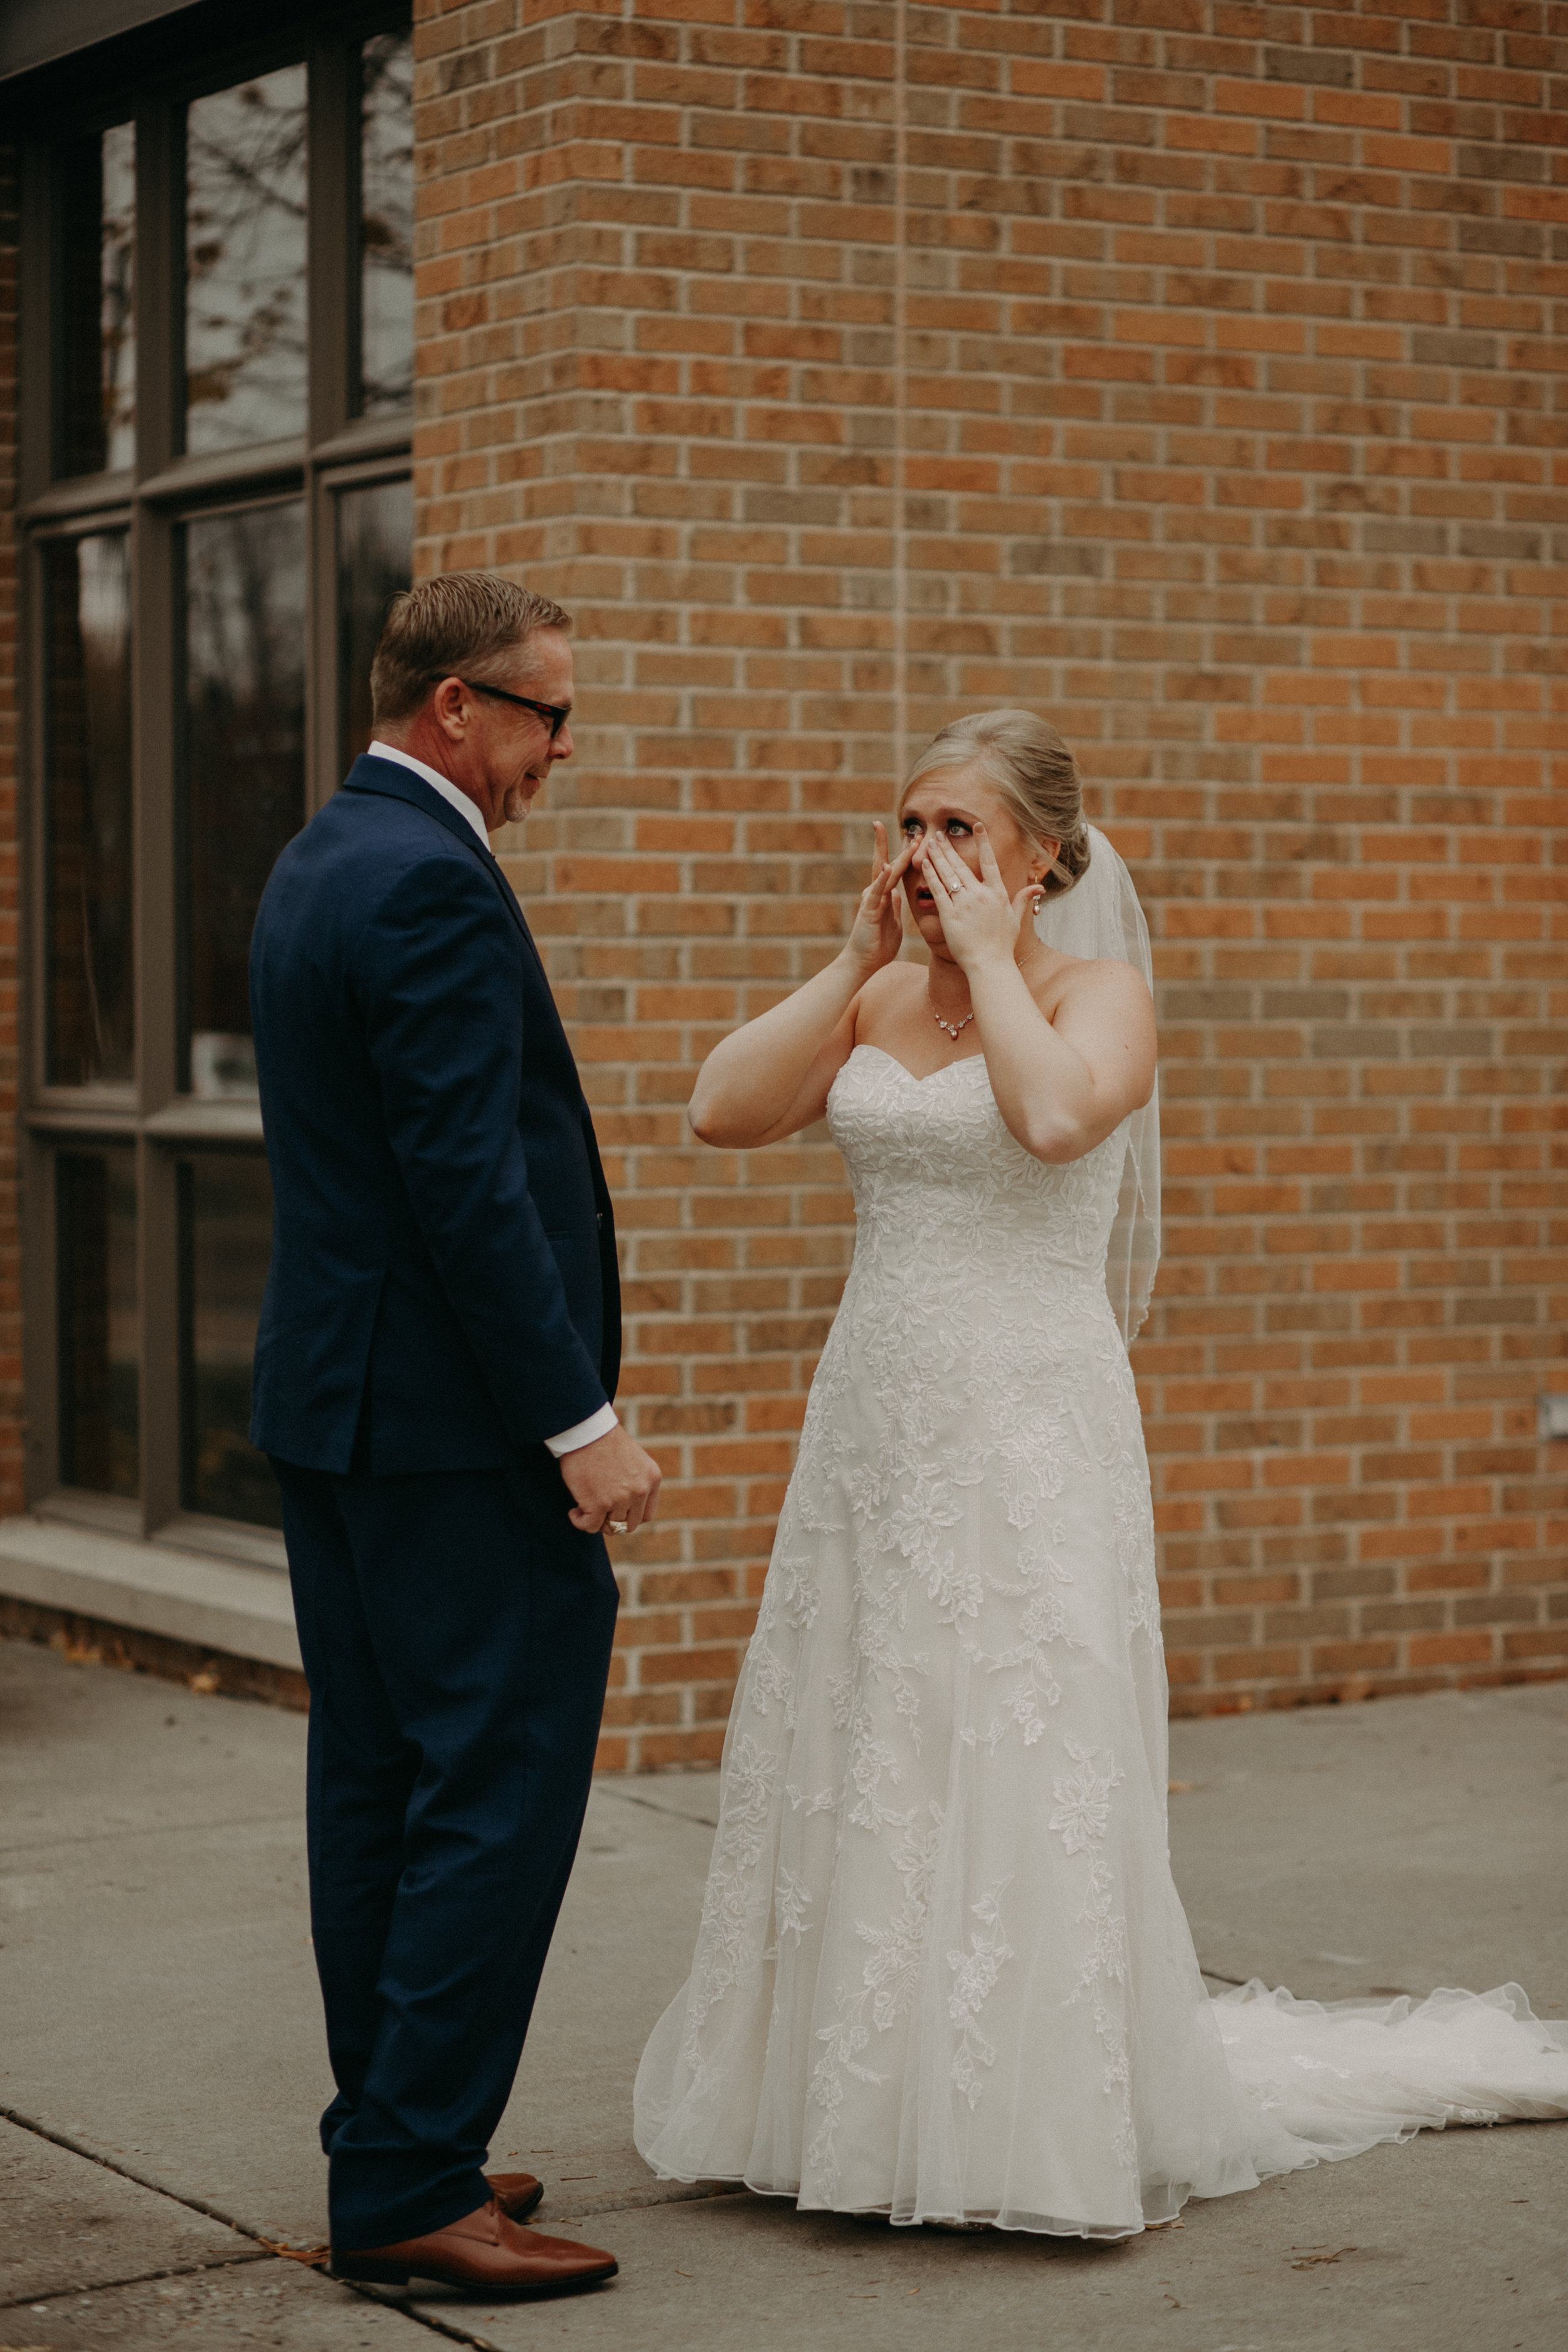 River Falls WI wedding photographers captures an emotional first look between father and bride